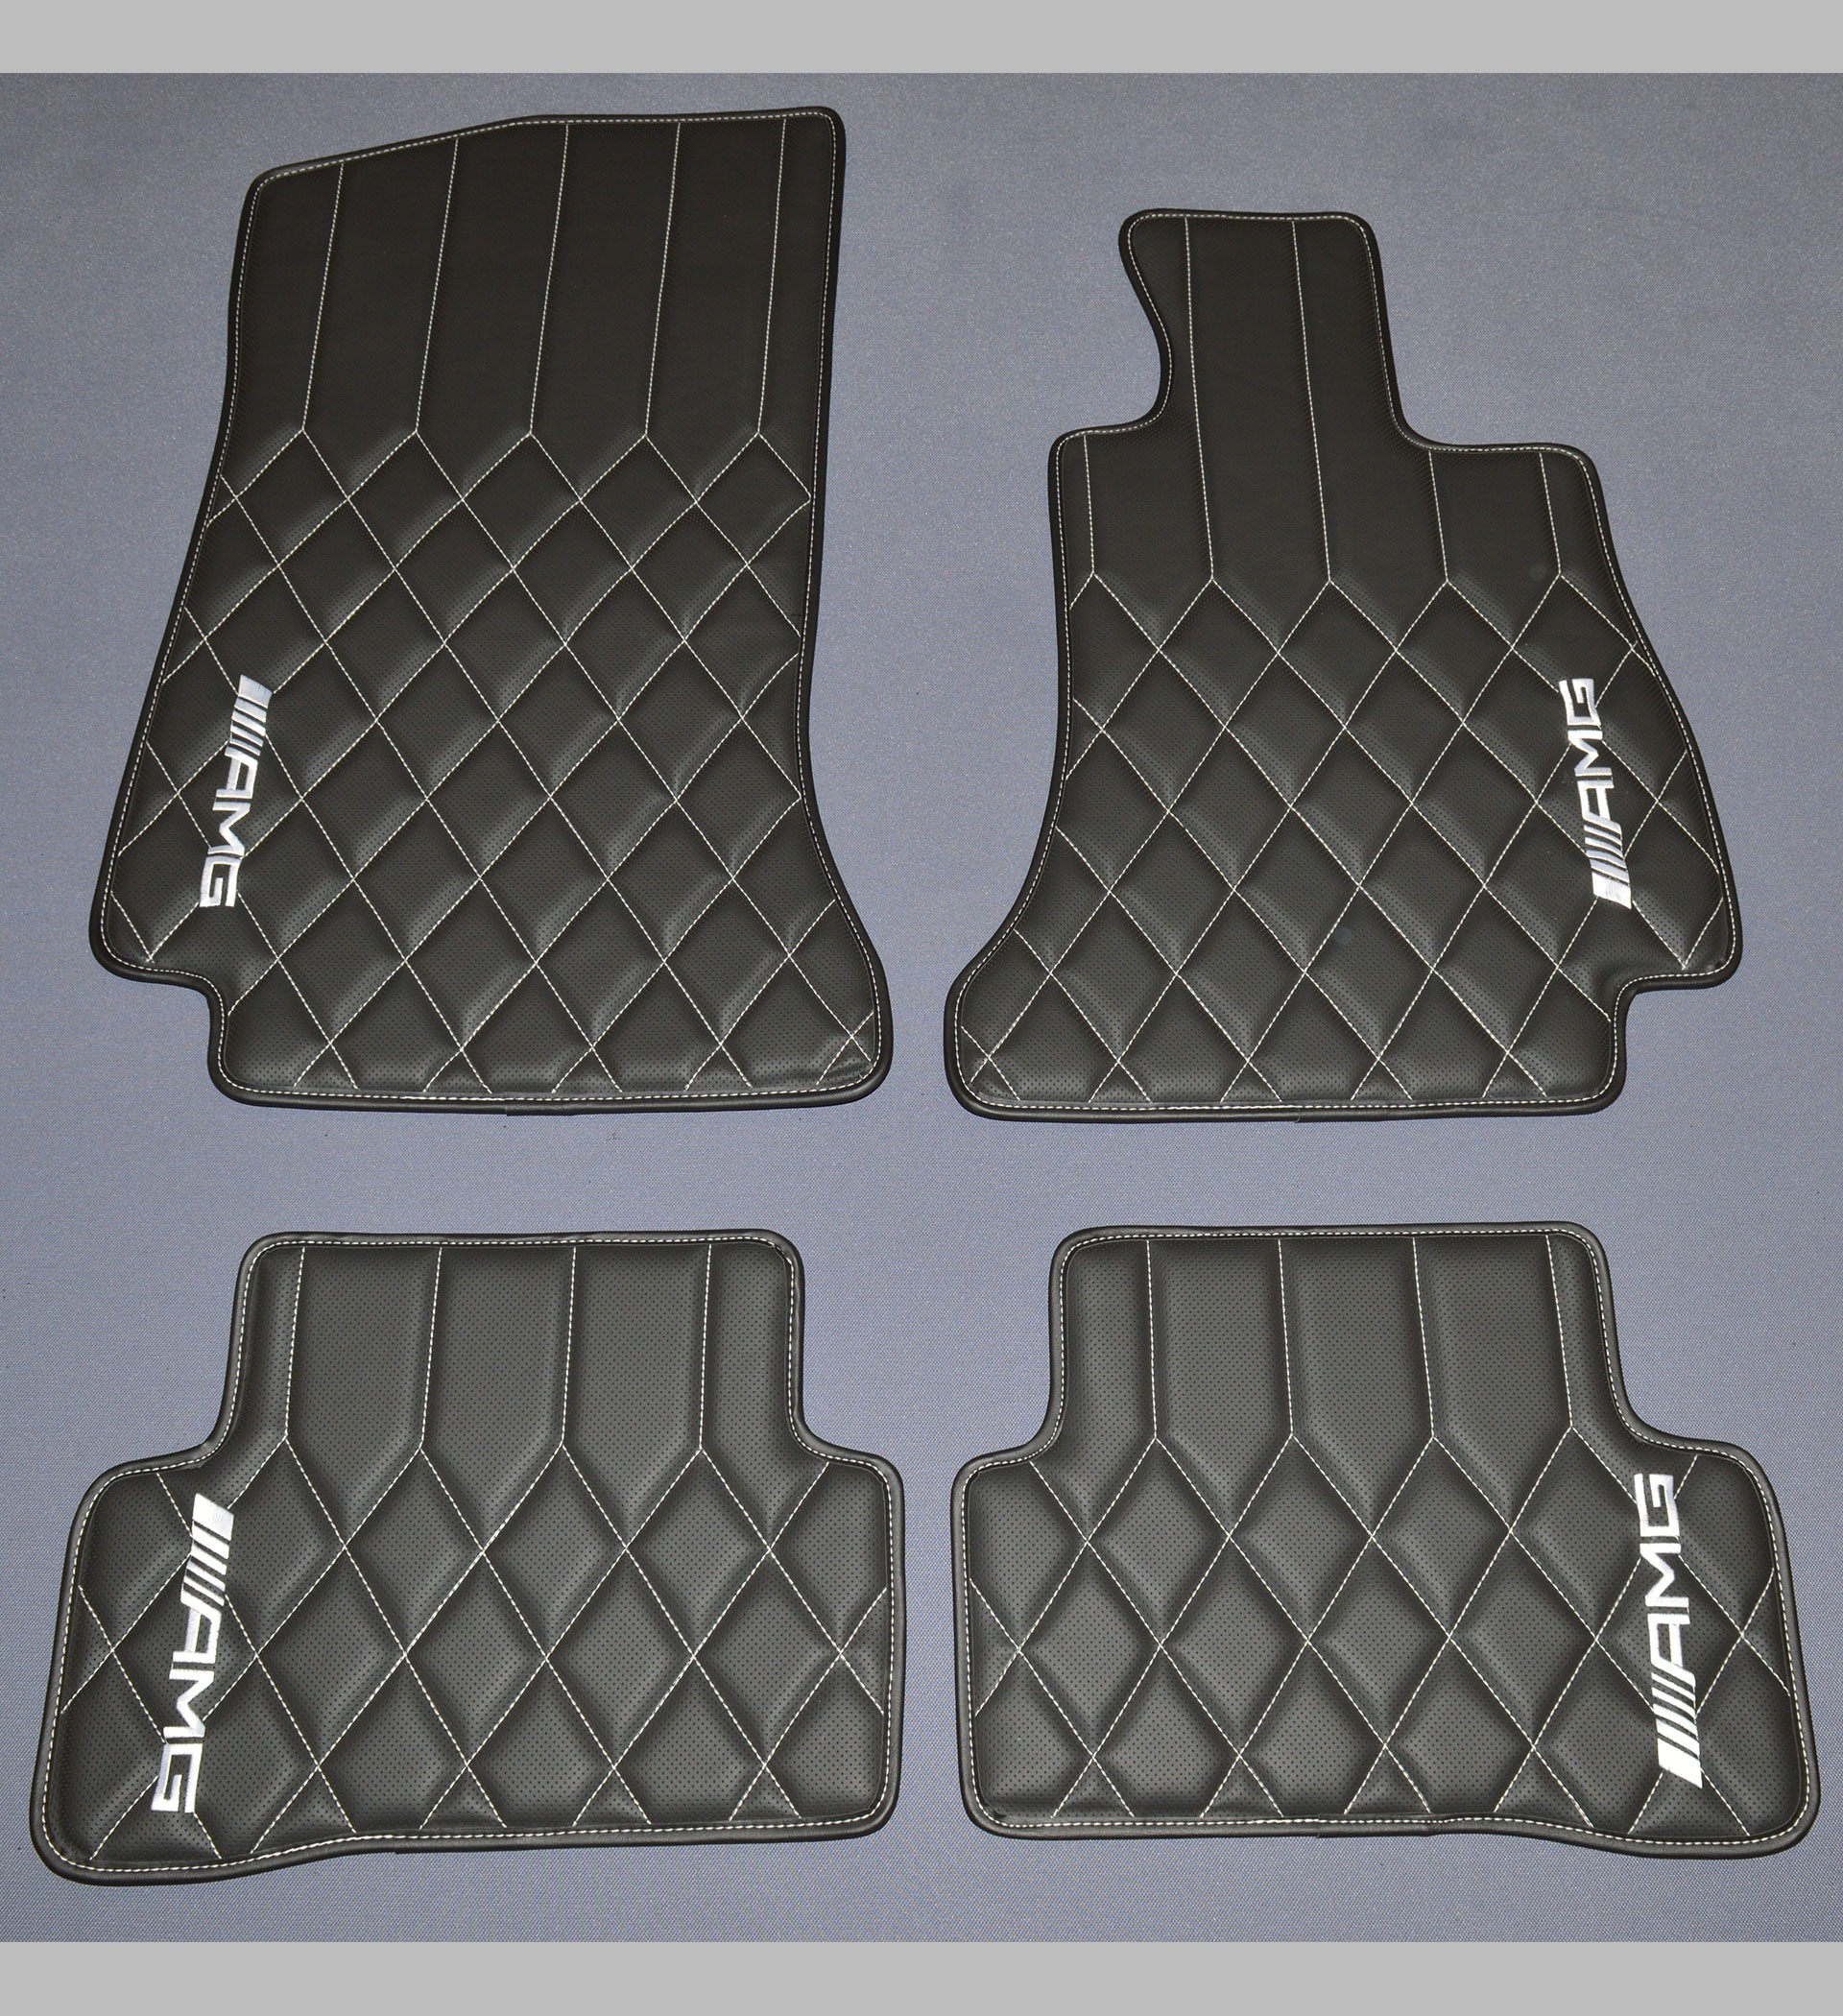 Mercedes Benz C Class W205 Amg Diamond Quilted Leatherette